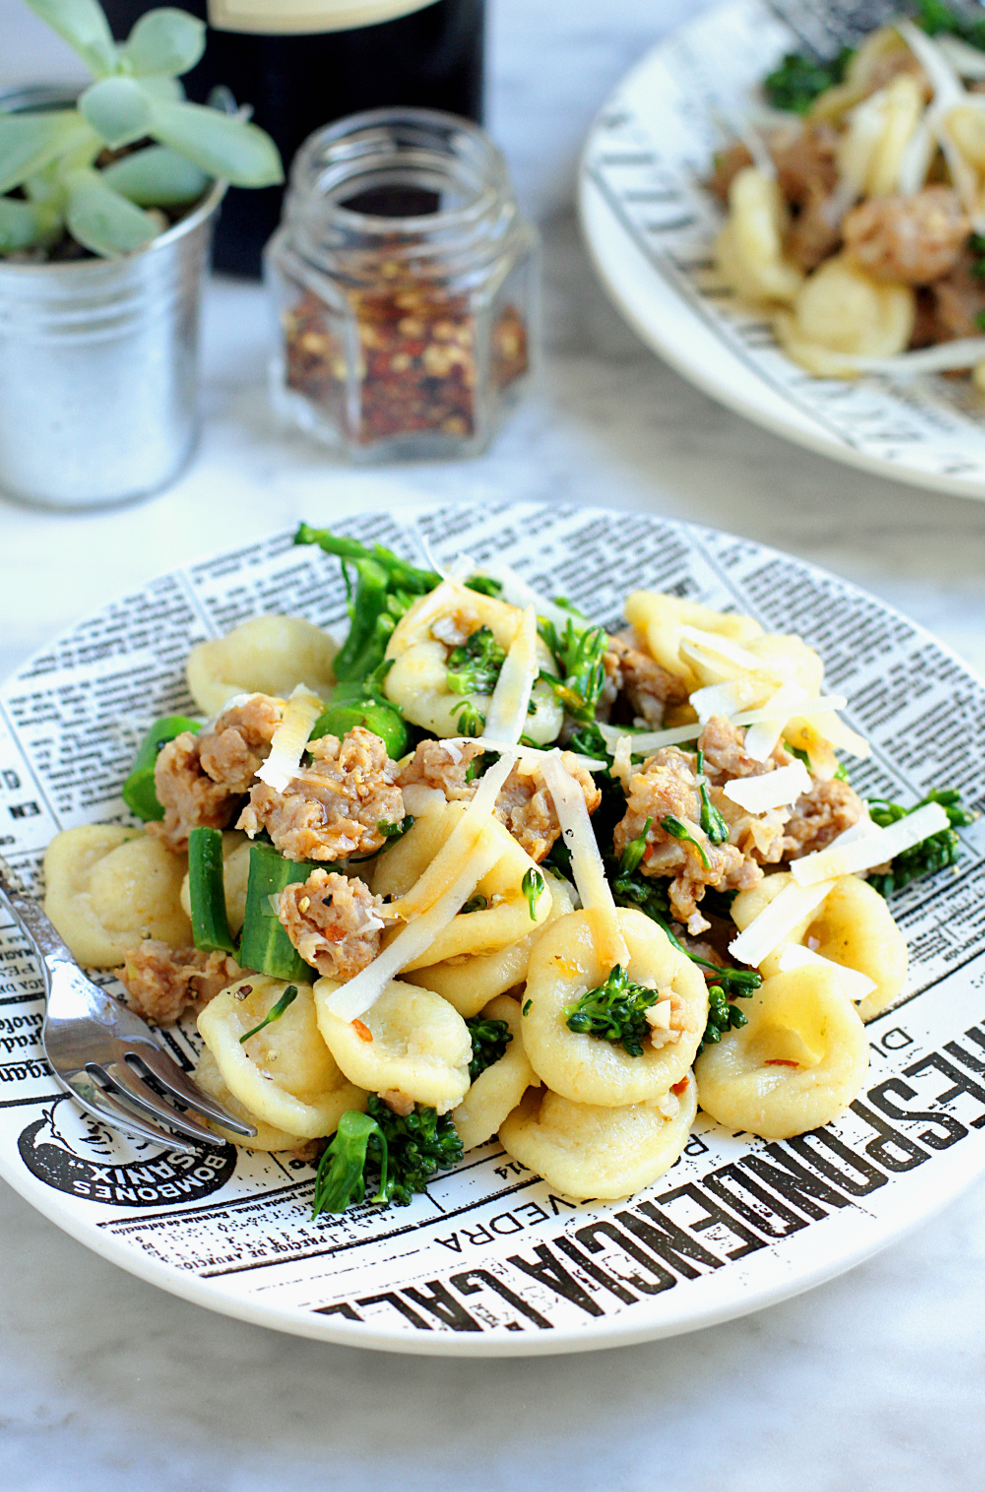 Image of homemade orecchiette with sausage and broccolini.